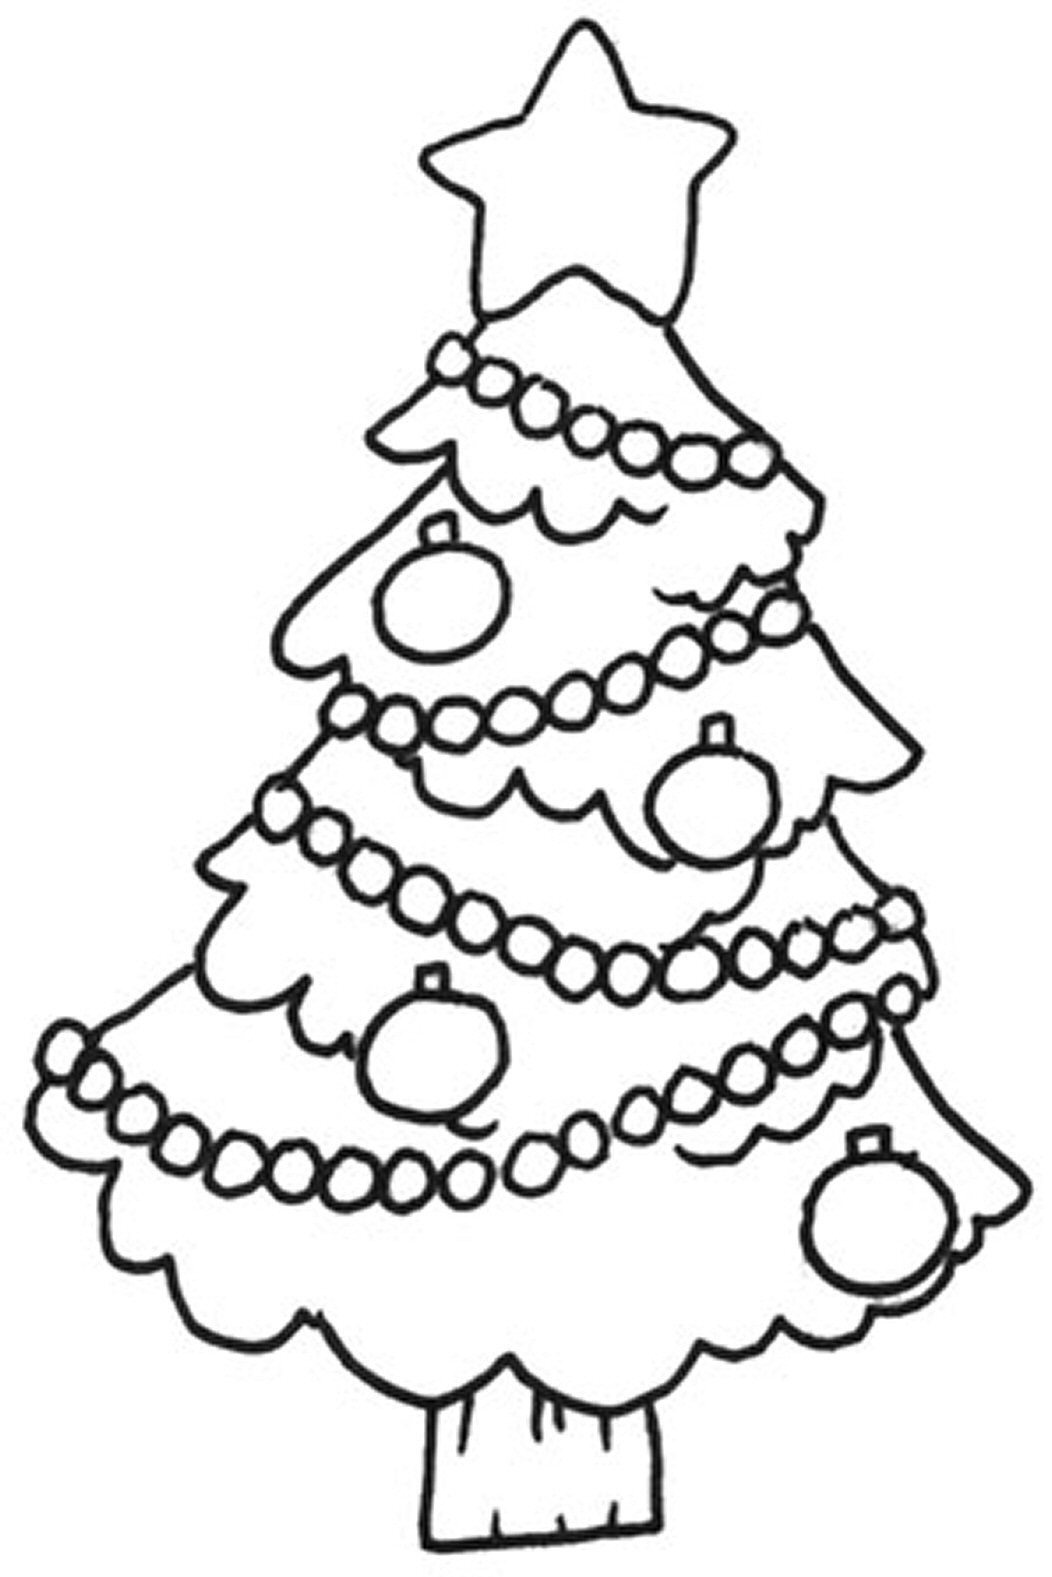 Drawn christmas ornaments blank Coloring Free Kids Tree Pages